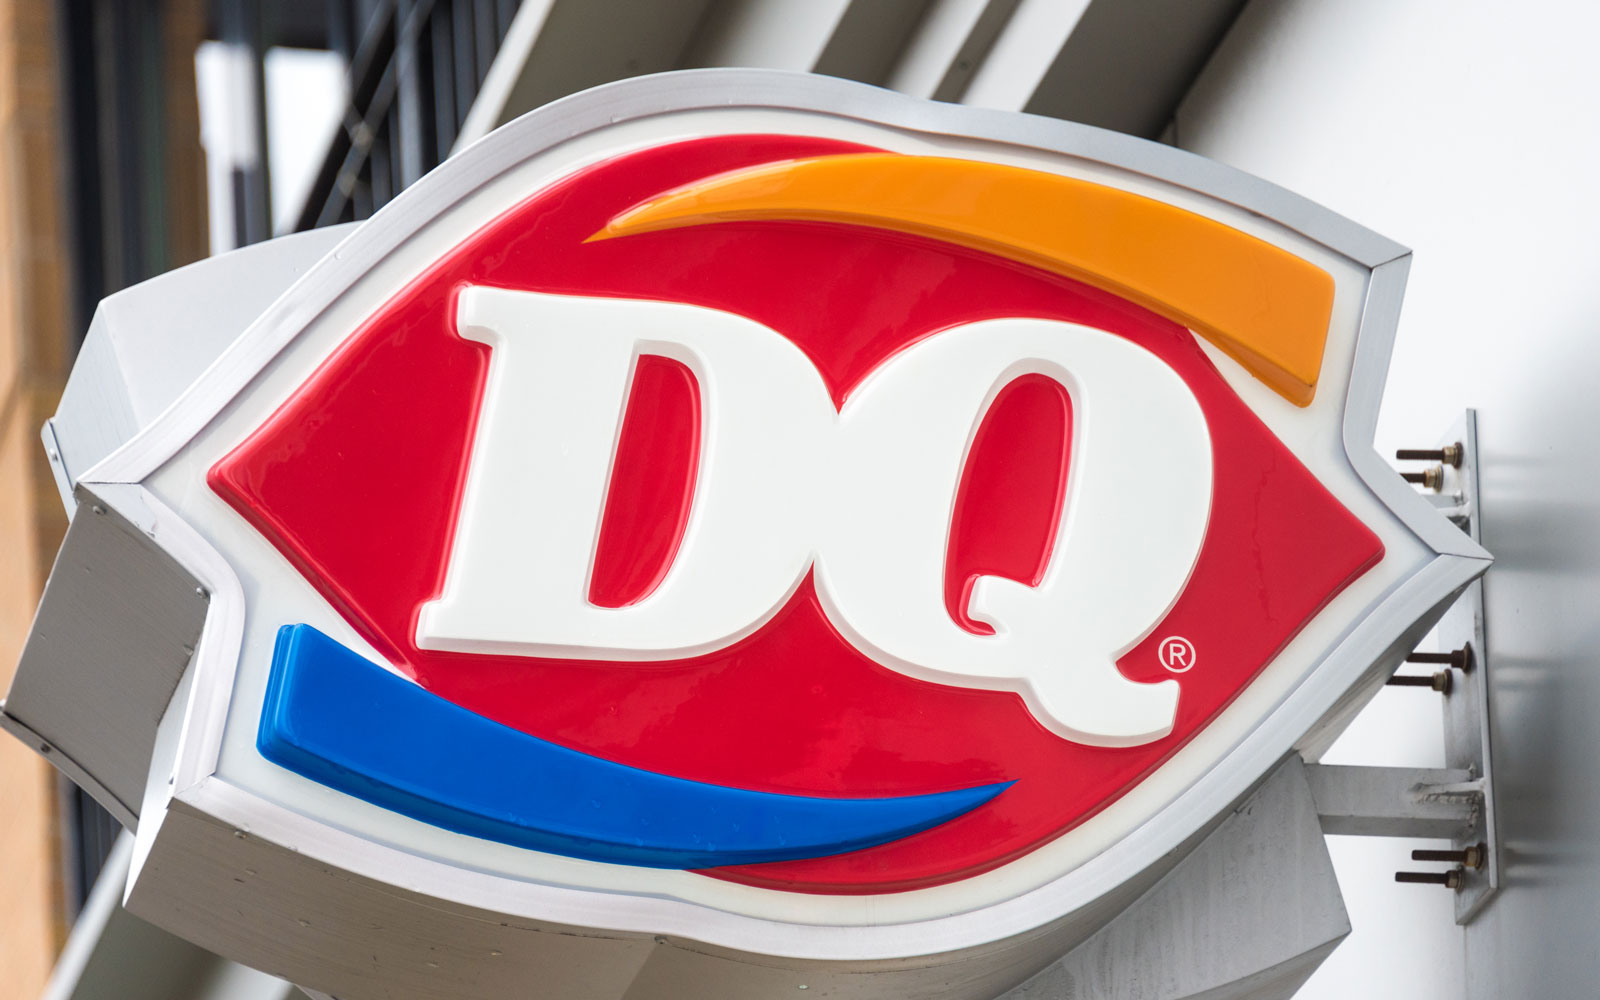 Dairy Queen Is Celebrating the First Day of Summer With Free Ice Cream Today